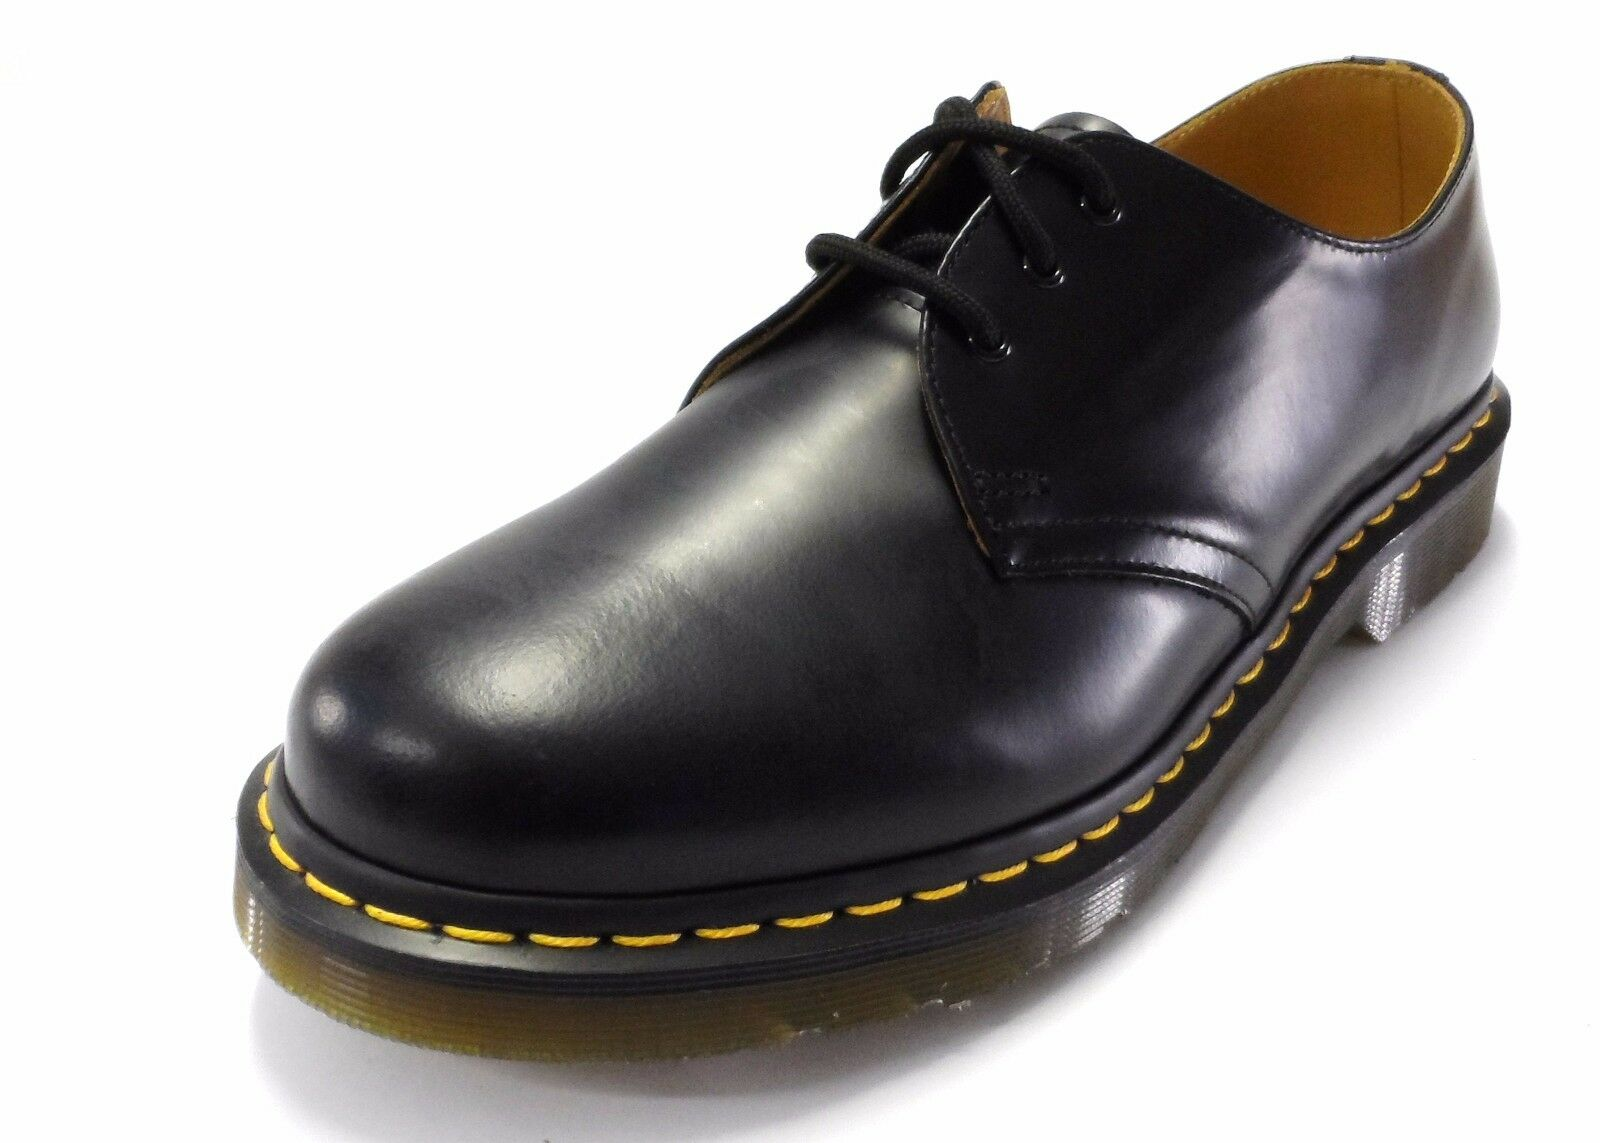 DR MARTENS 1461 Black Smooth Shoes Leather Shoes Smooth f0e2ca